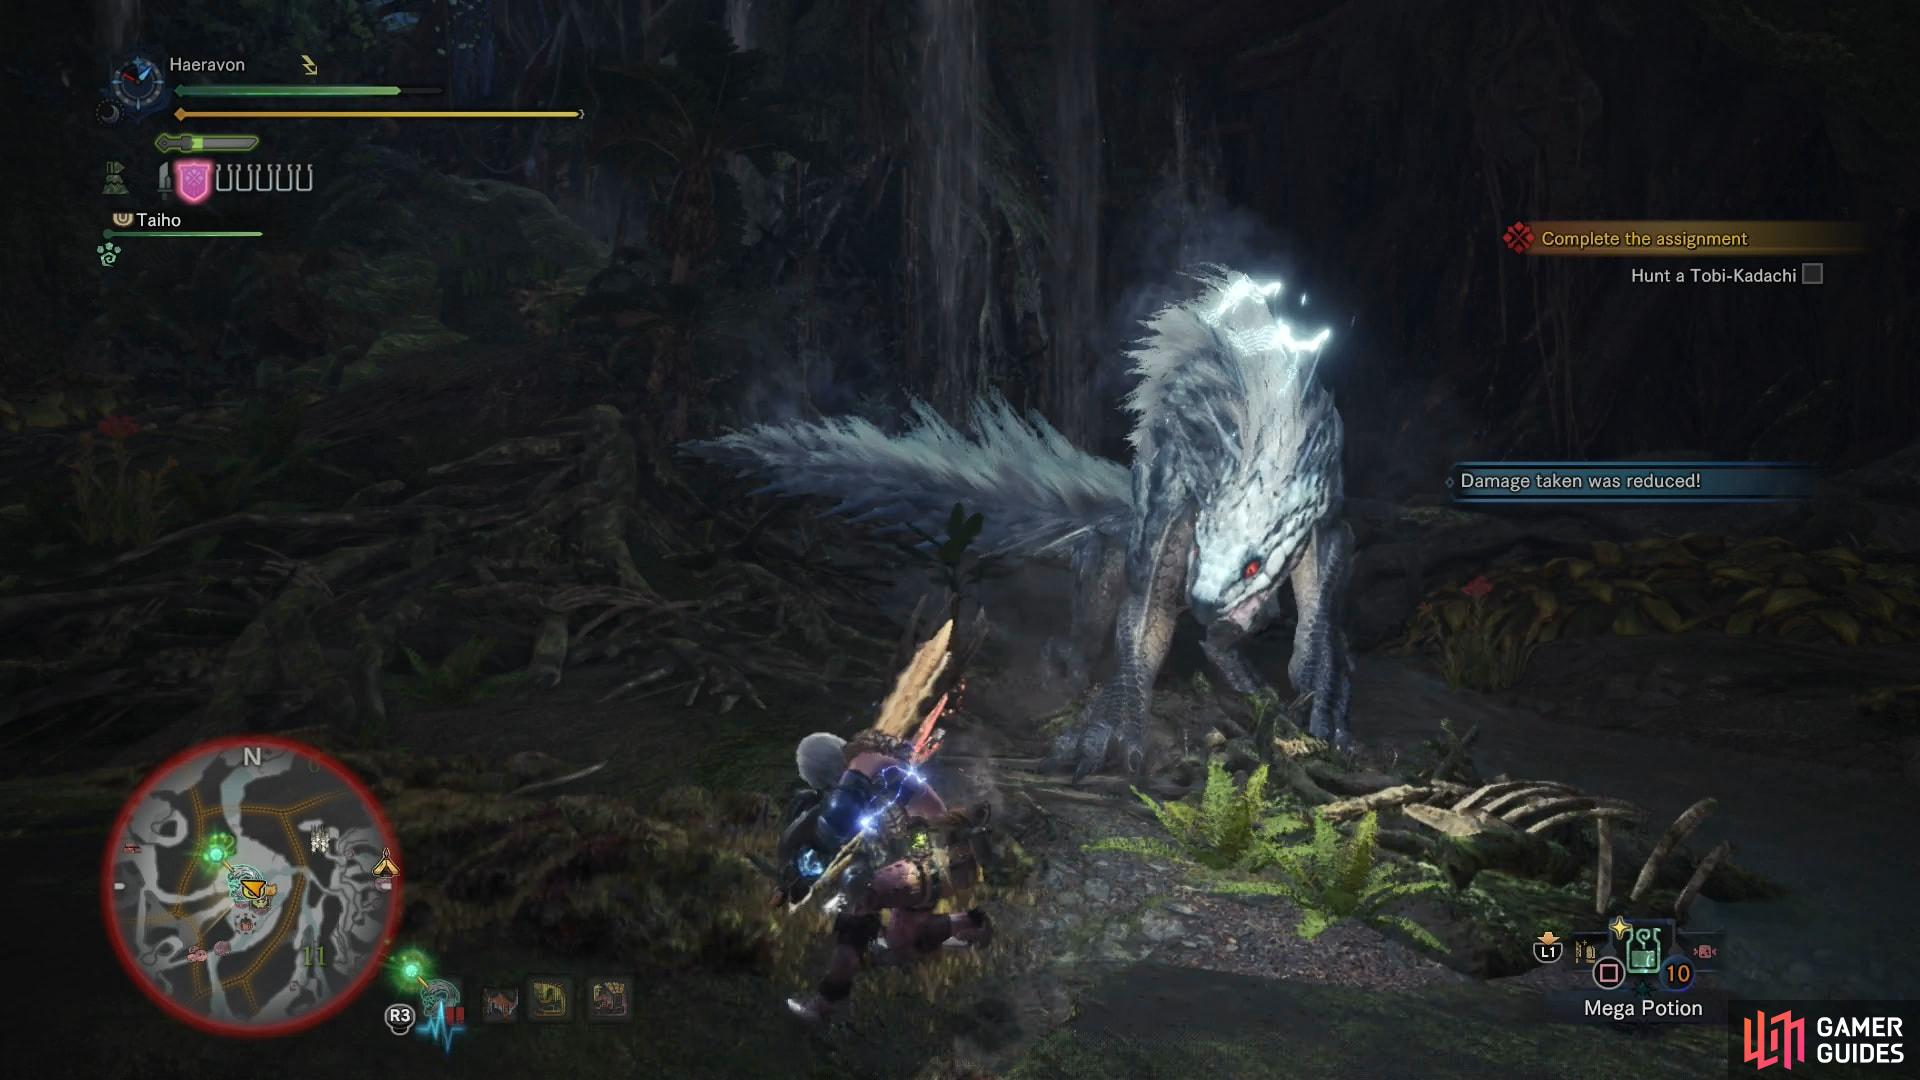 When enraged, the Tobi-Kadachi will charge itself up